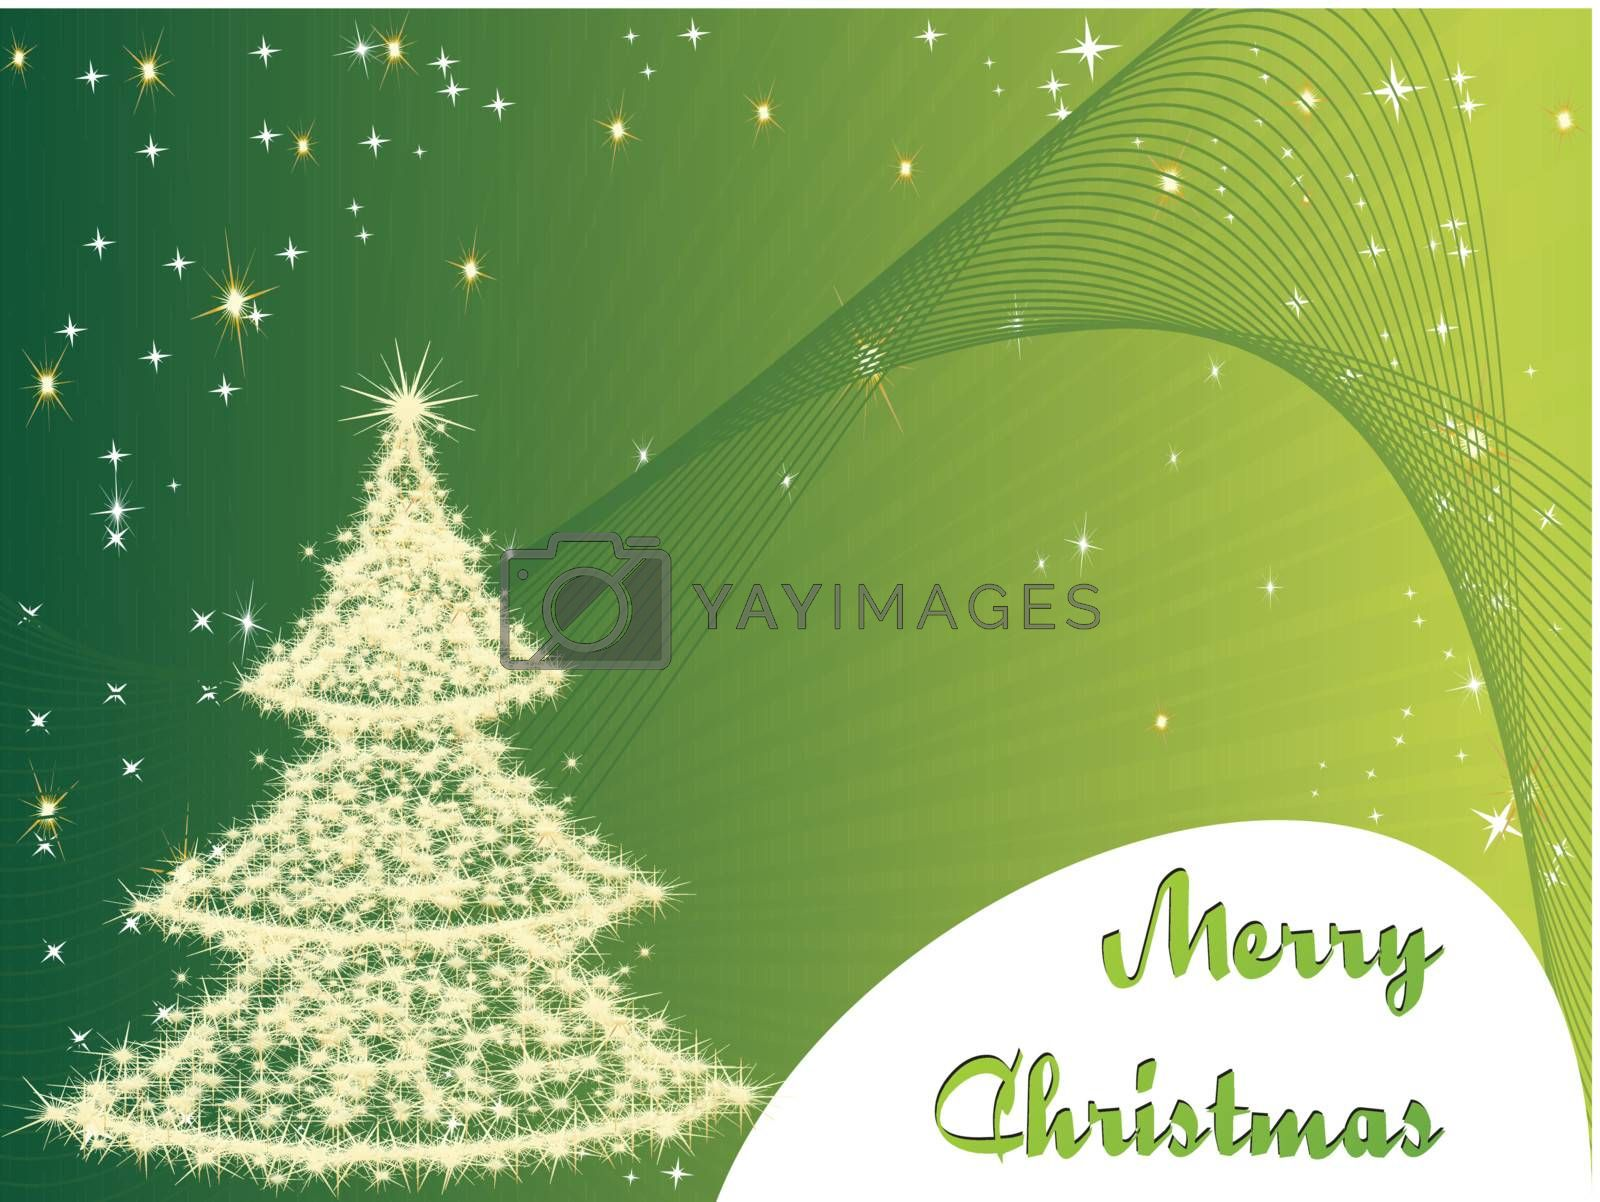 snowflakes in a christmas tree shape, illustration